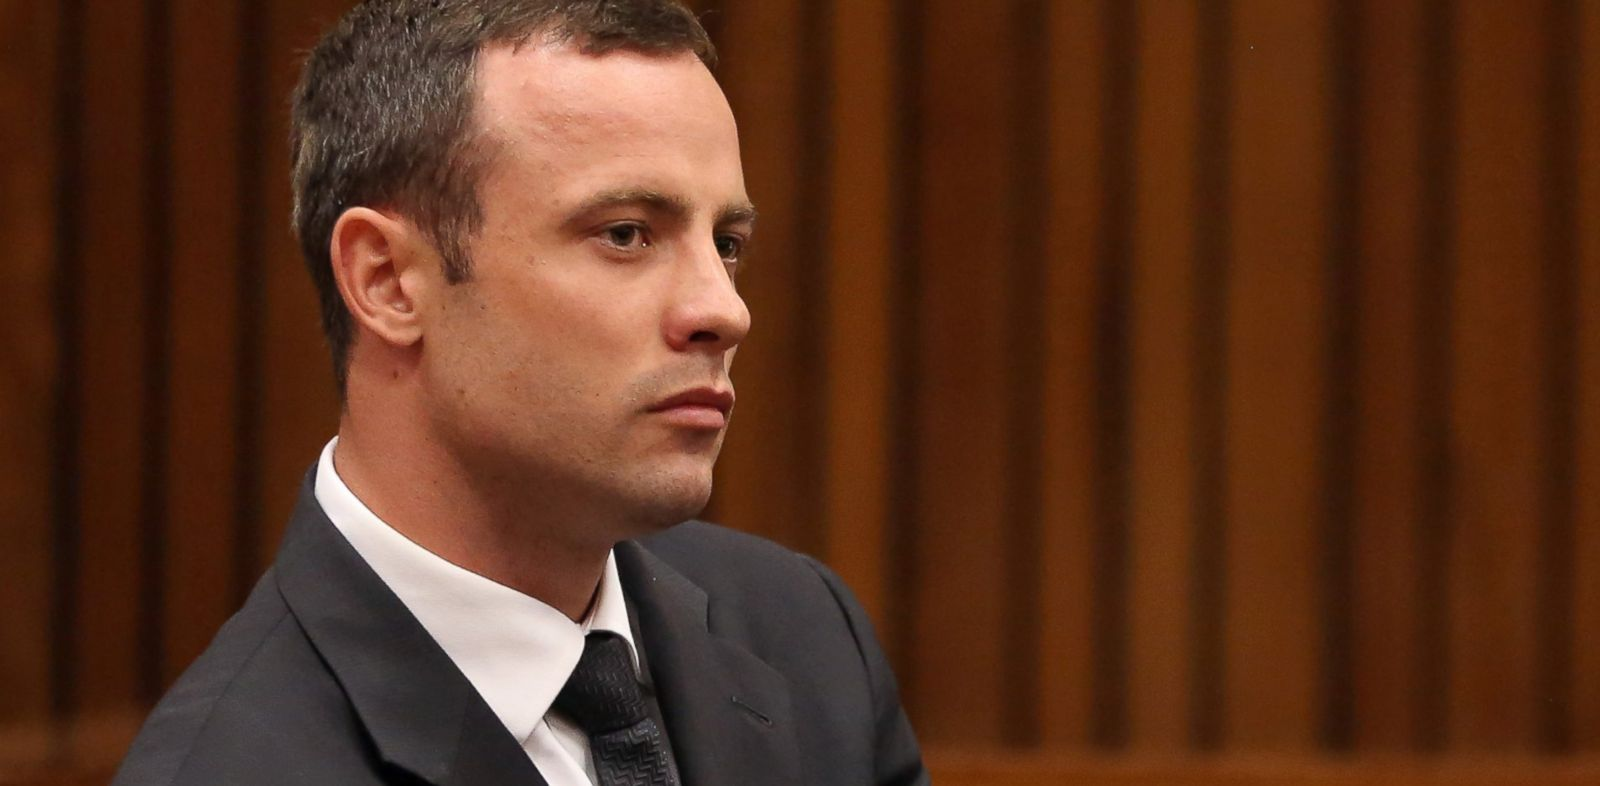 PHOTO: Oscar Pistorius sits in the dock during his trial at the high court in Pretoria, South Africa, March 7, 2014.